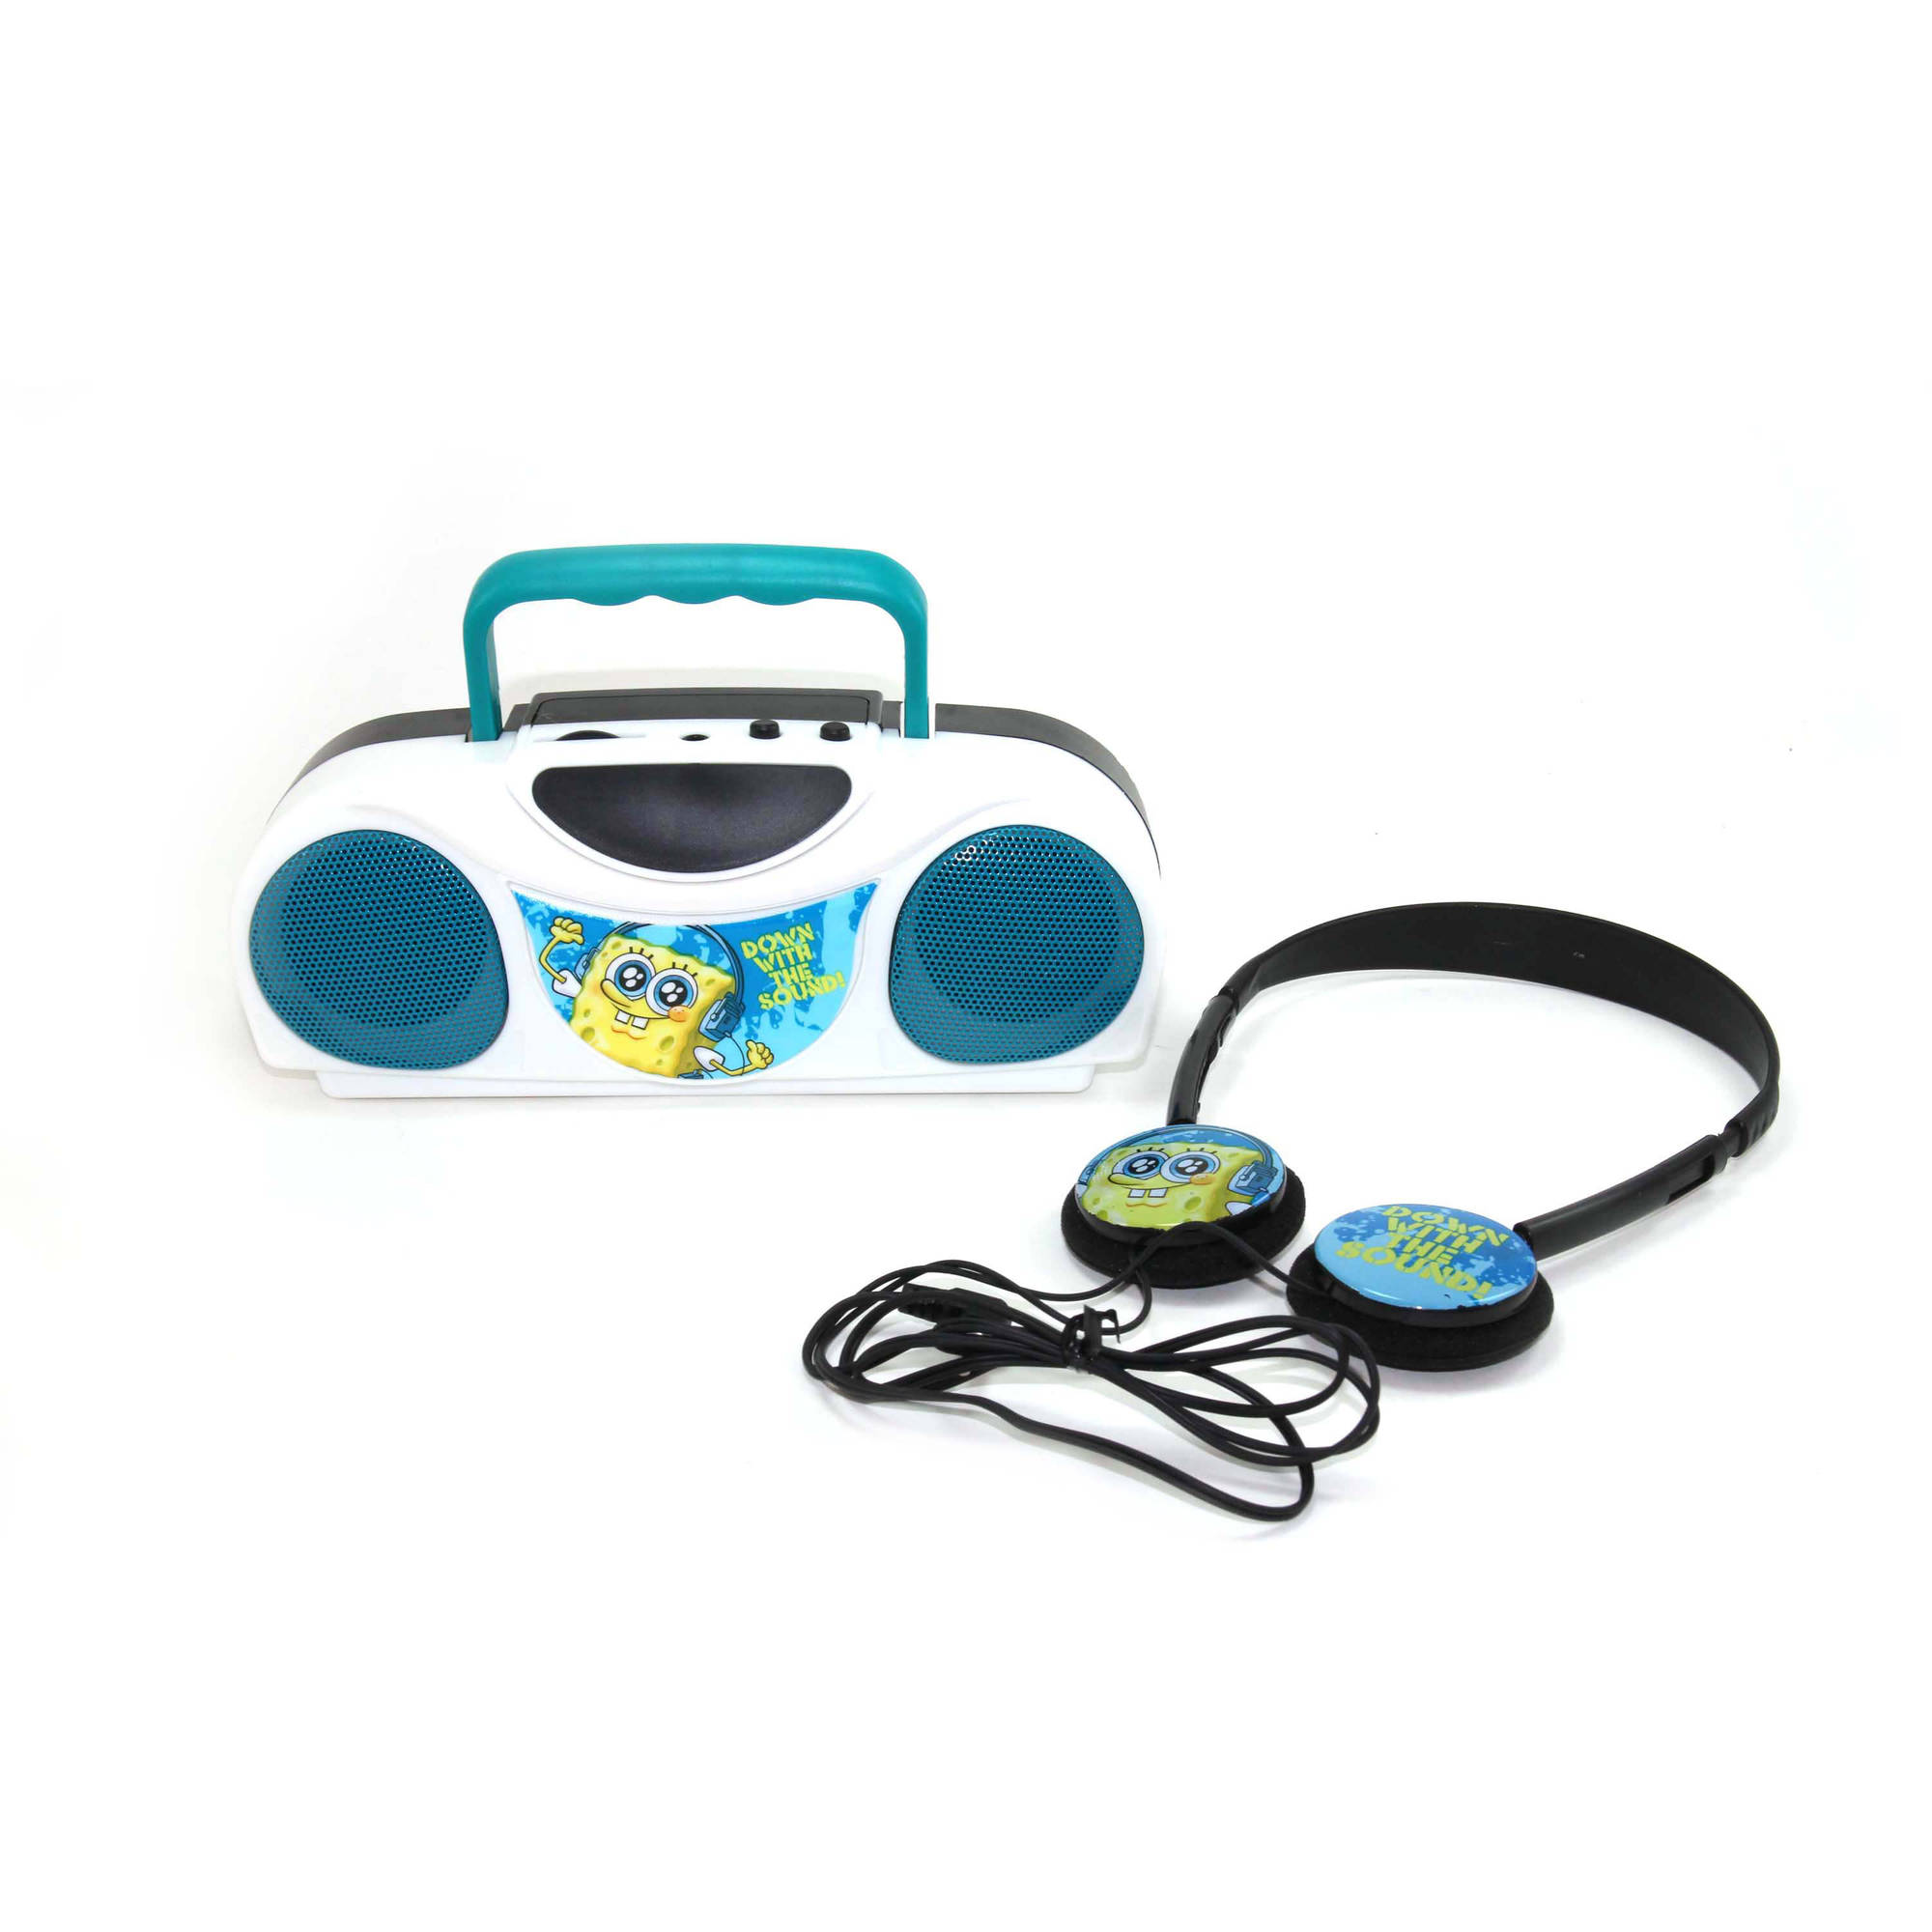 Nickelodeon Spongebob Squarepants Twin Speaker Radio and Headphone Kit